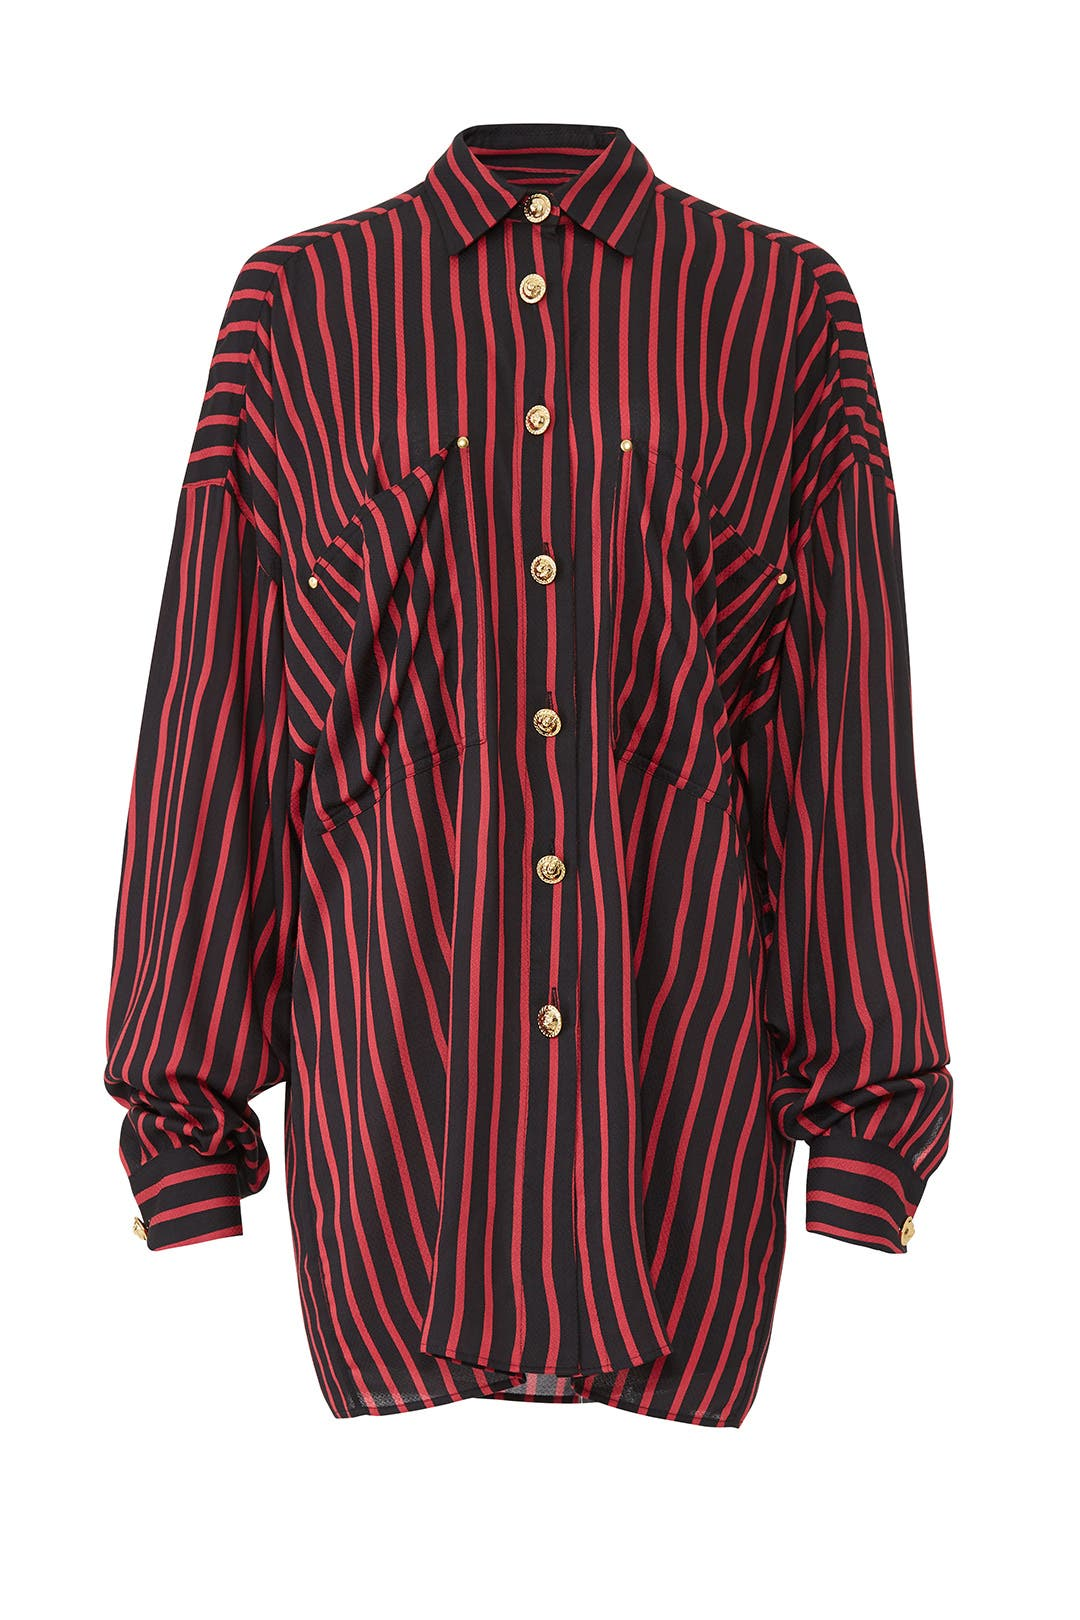 58c78c11c79 Oversize Stripe Shirt by The Kooples for $40 | Rent the Runway